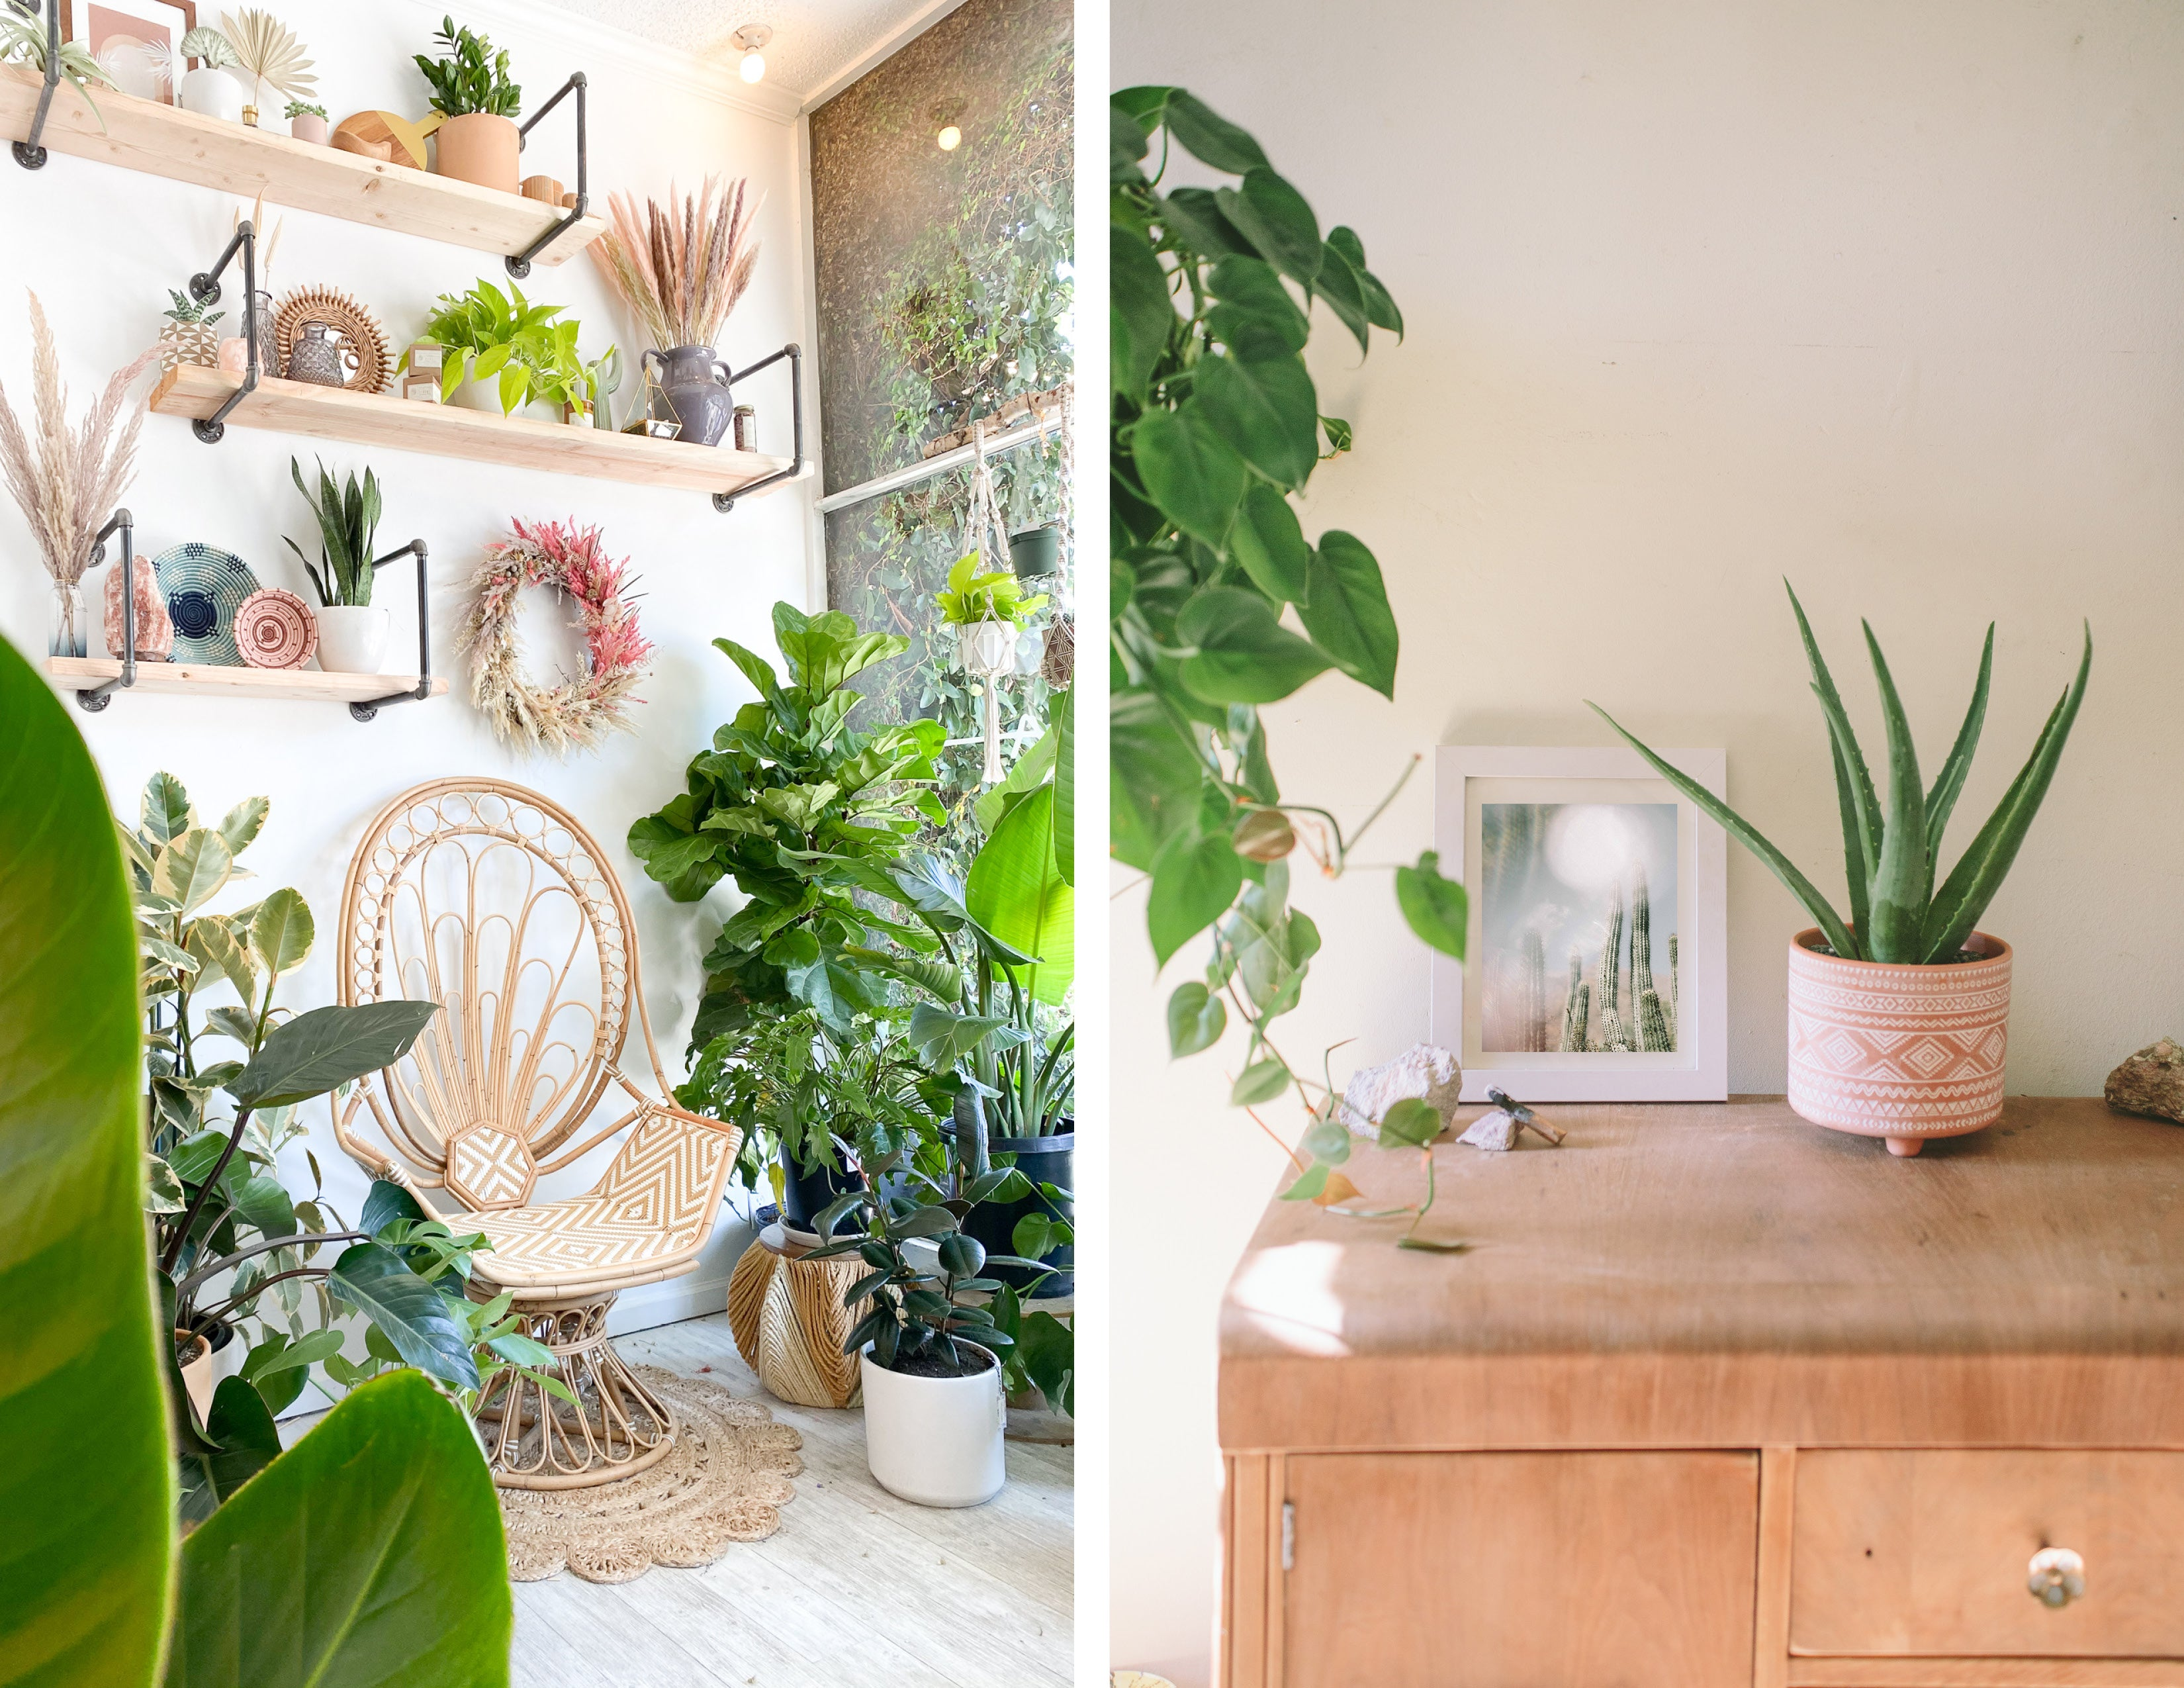 styling home house plant size retro antique chair wildflora los angeles studio city aloe hanging pothos philodendron